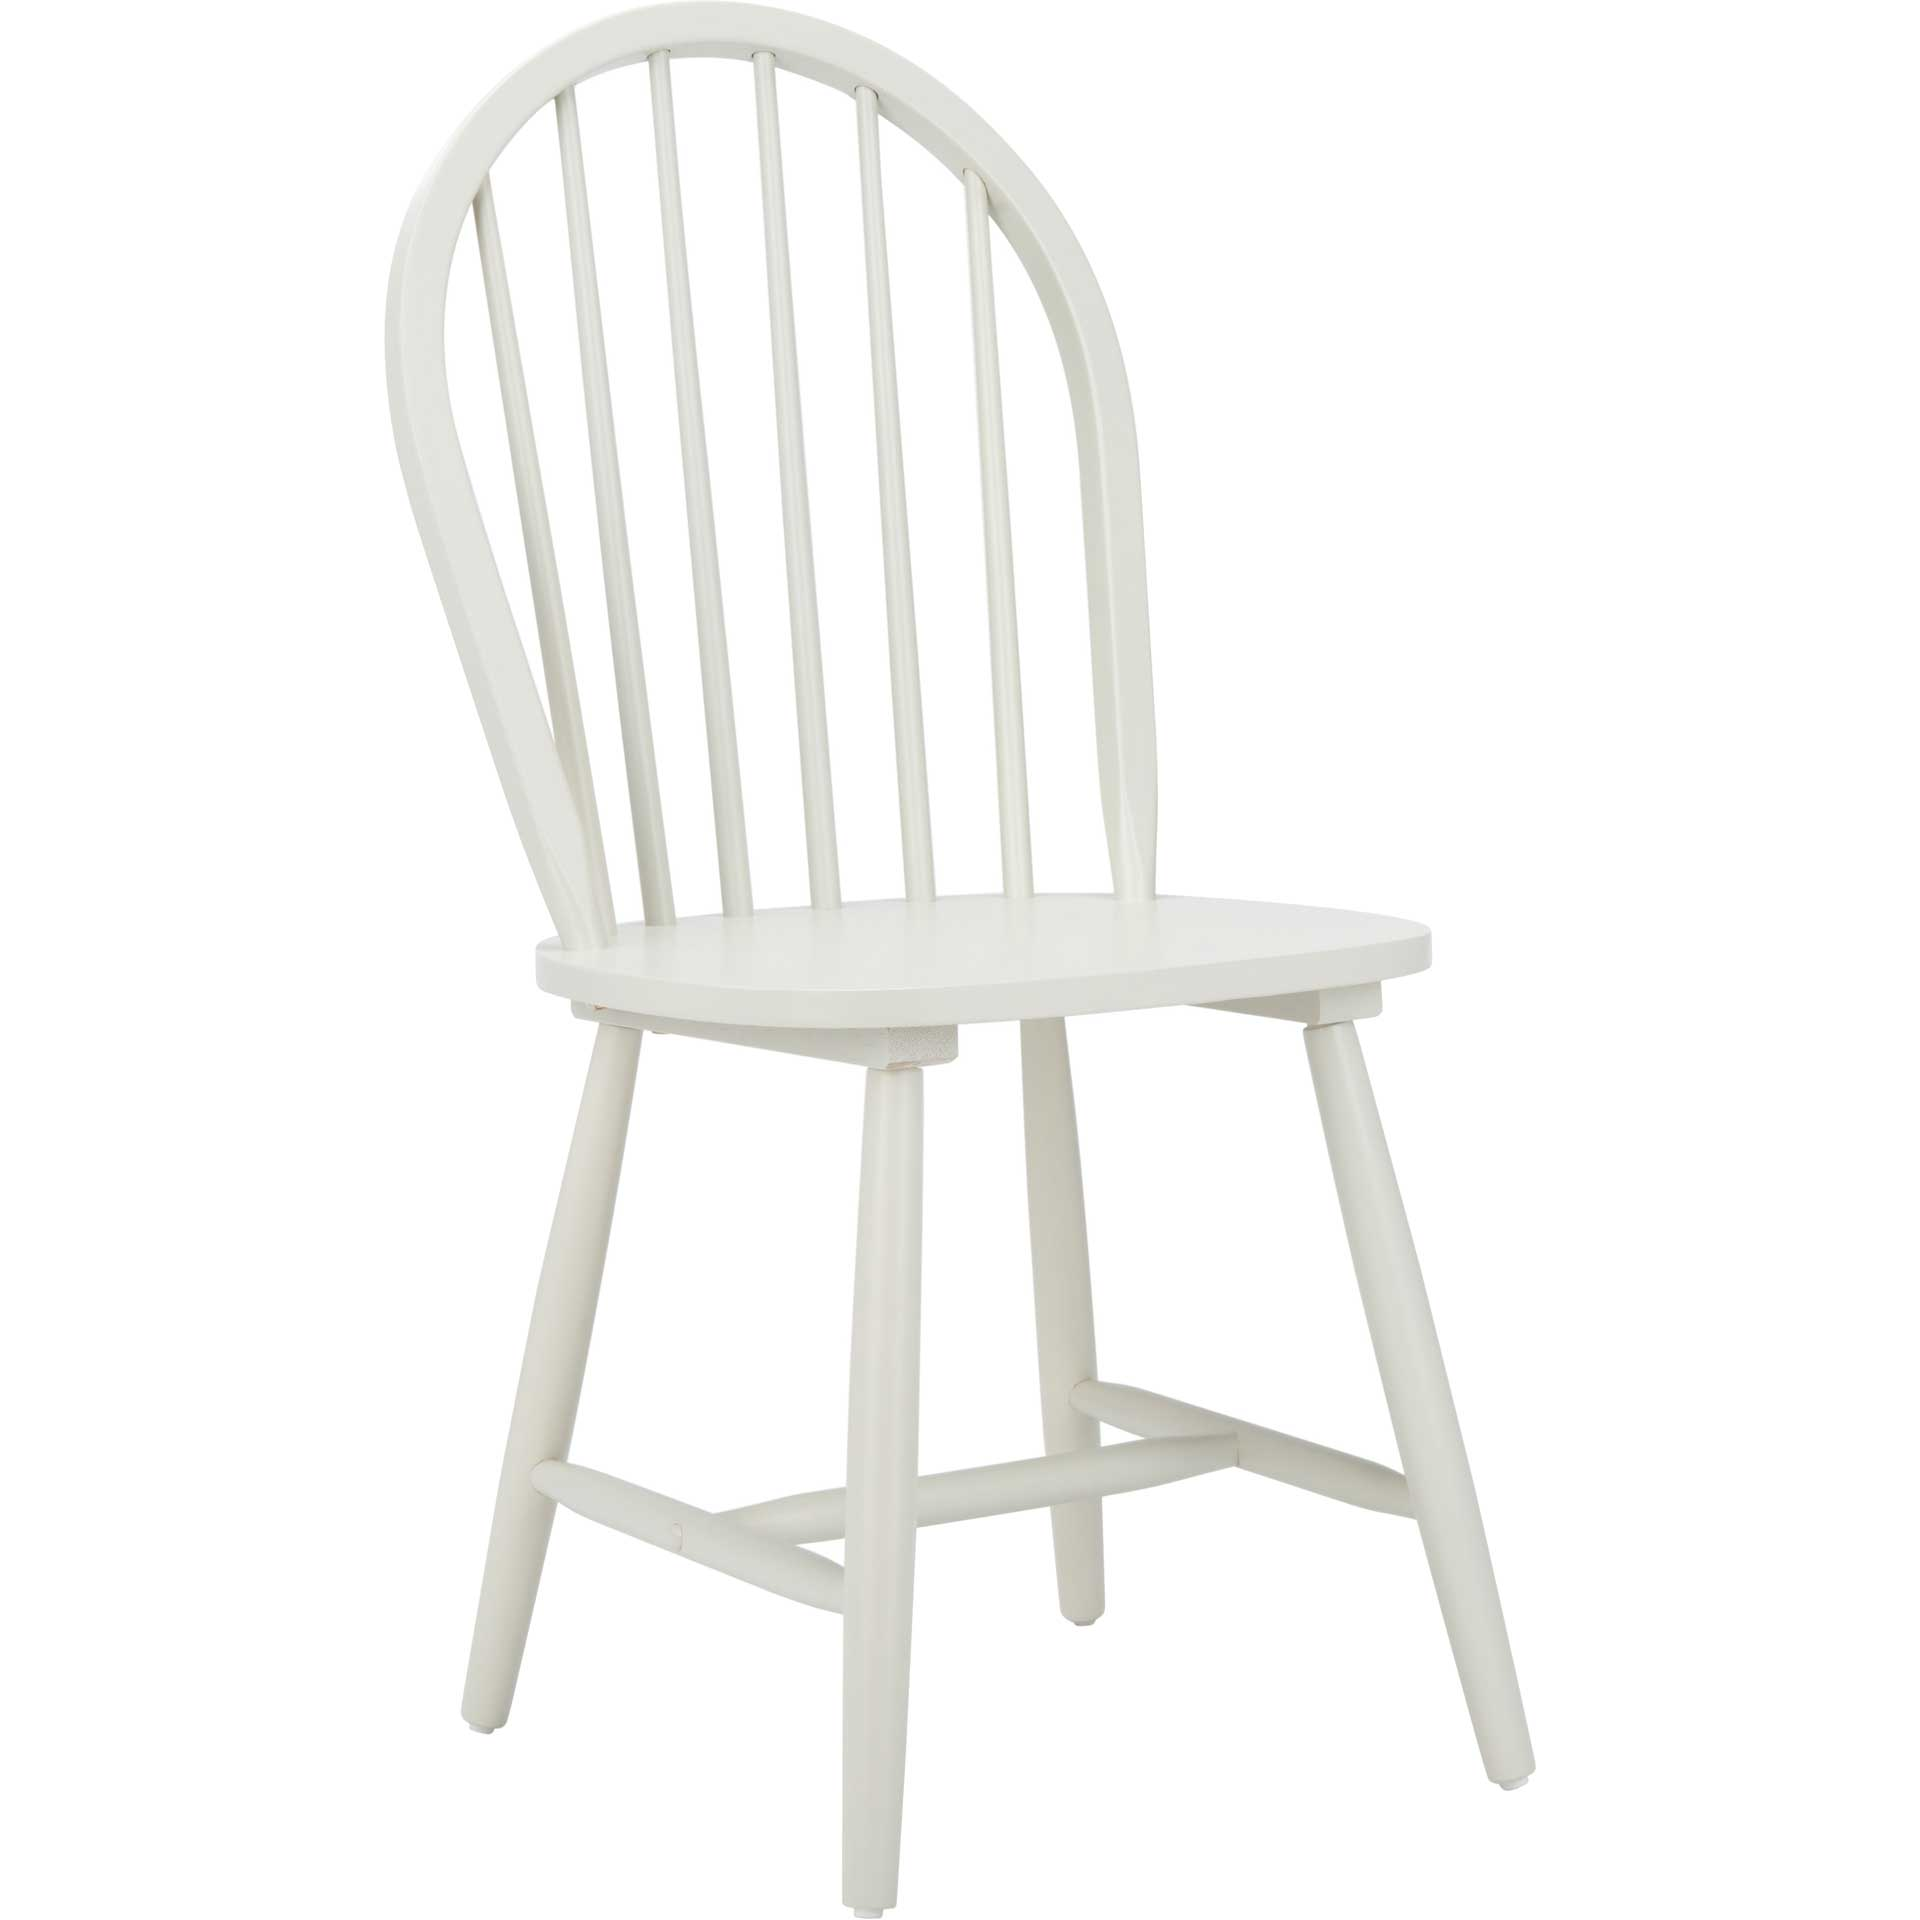 Calista Spindle Back Chair Off White (Set of 2)